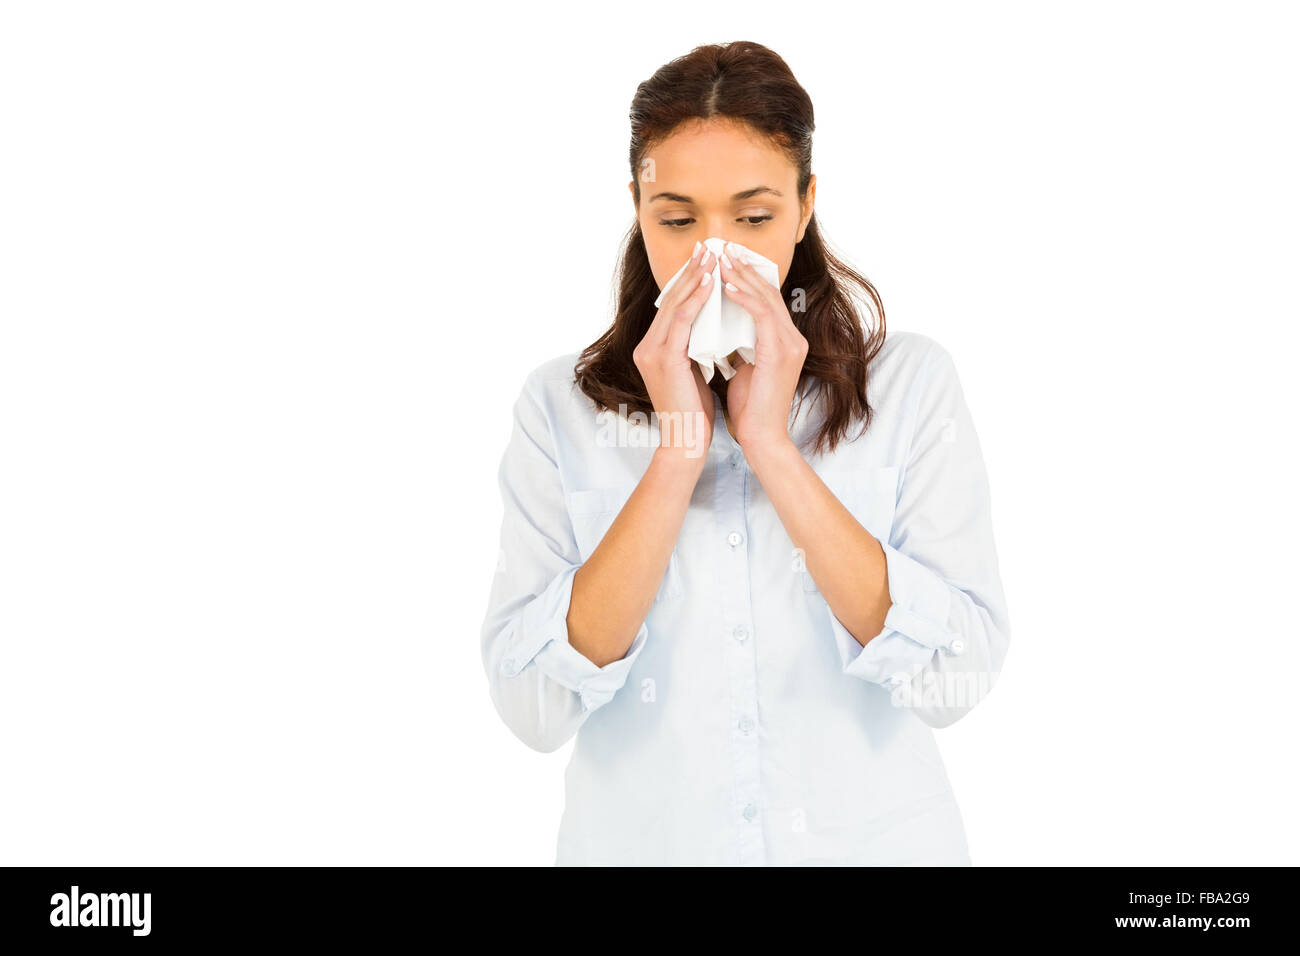 Woman blowing nose with tissue paper - Stock Image